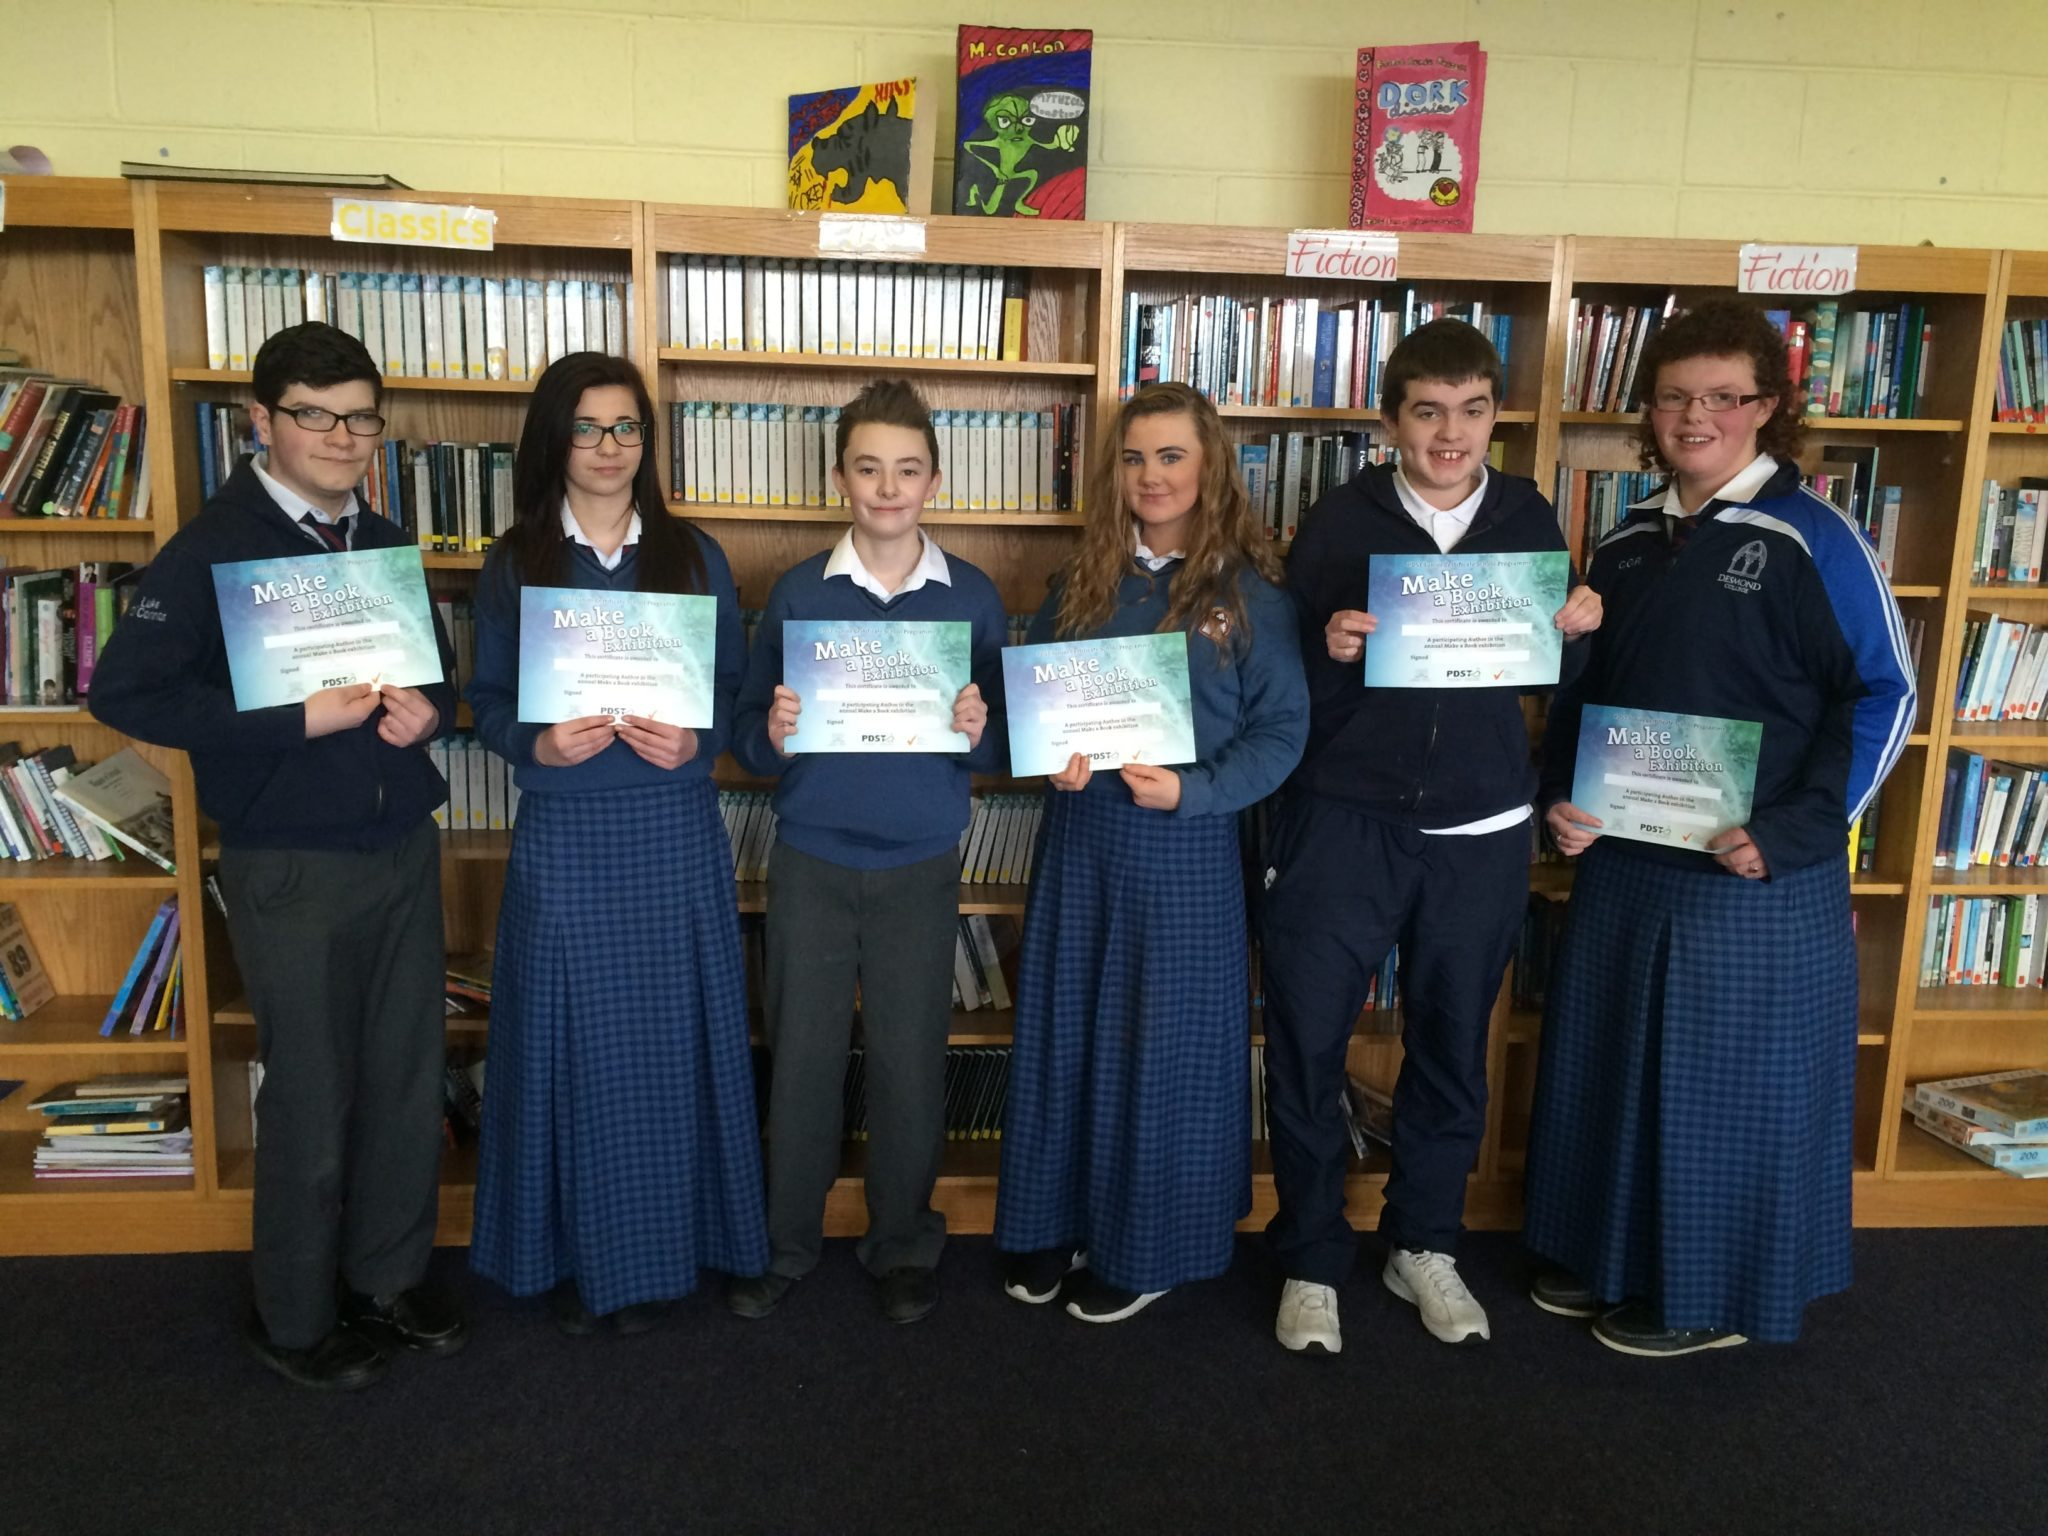 Feb 2016: The JCSP students of Desmond College display their certificates from the Make a Book Exhibition, which was held in Cork